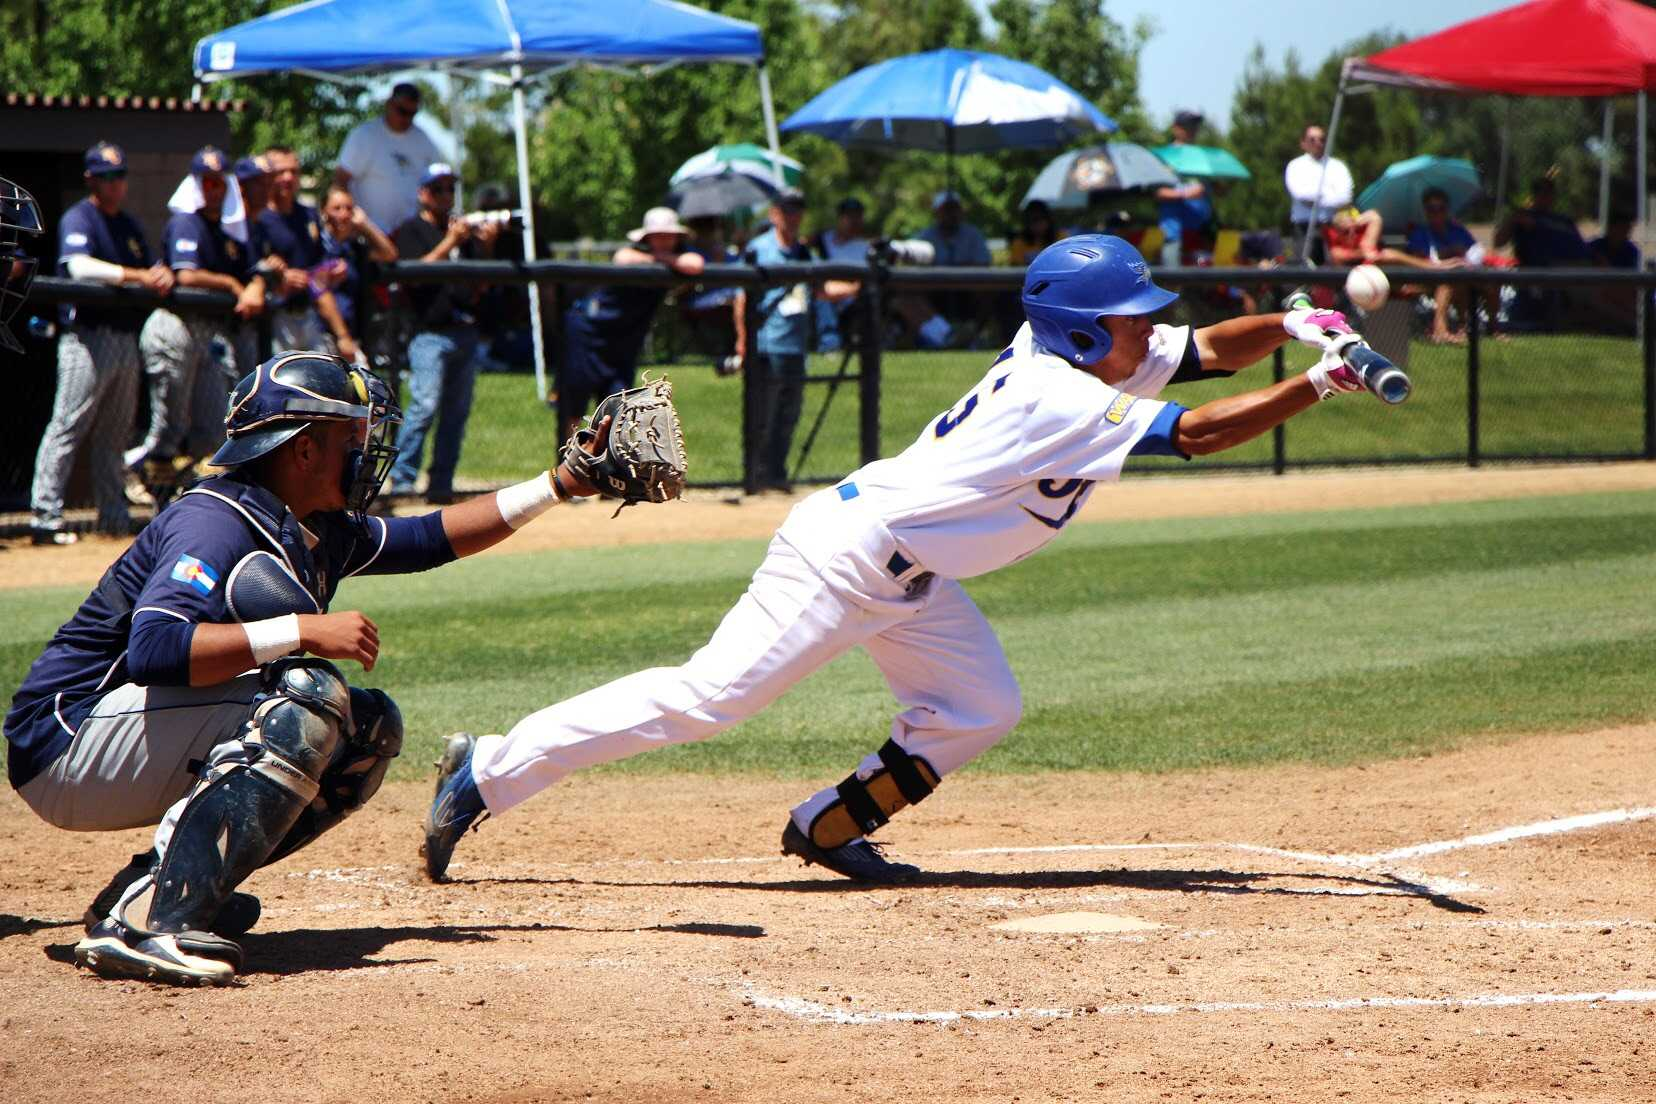 Carter's walk-off RBI double lifts Roadrunners past Bears